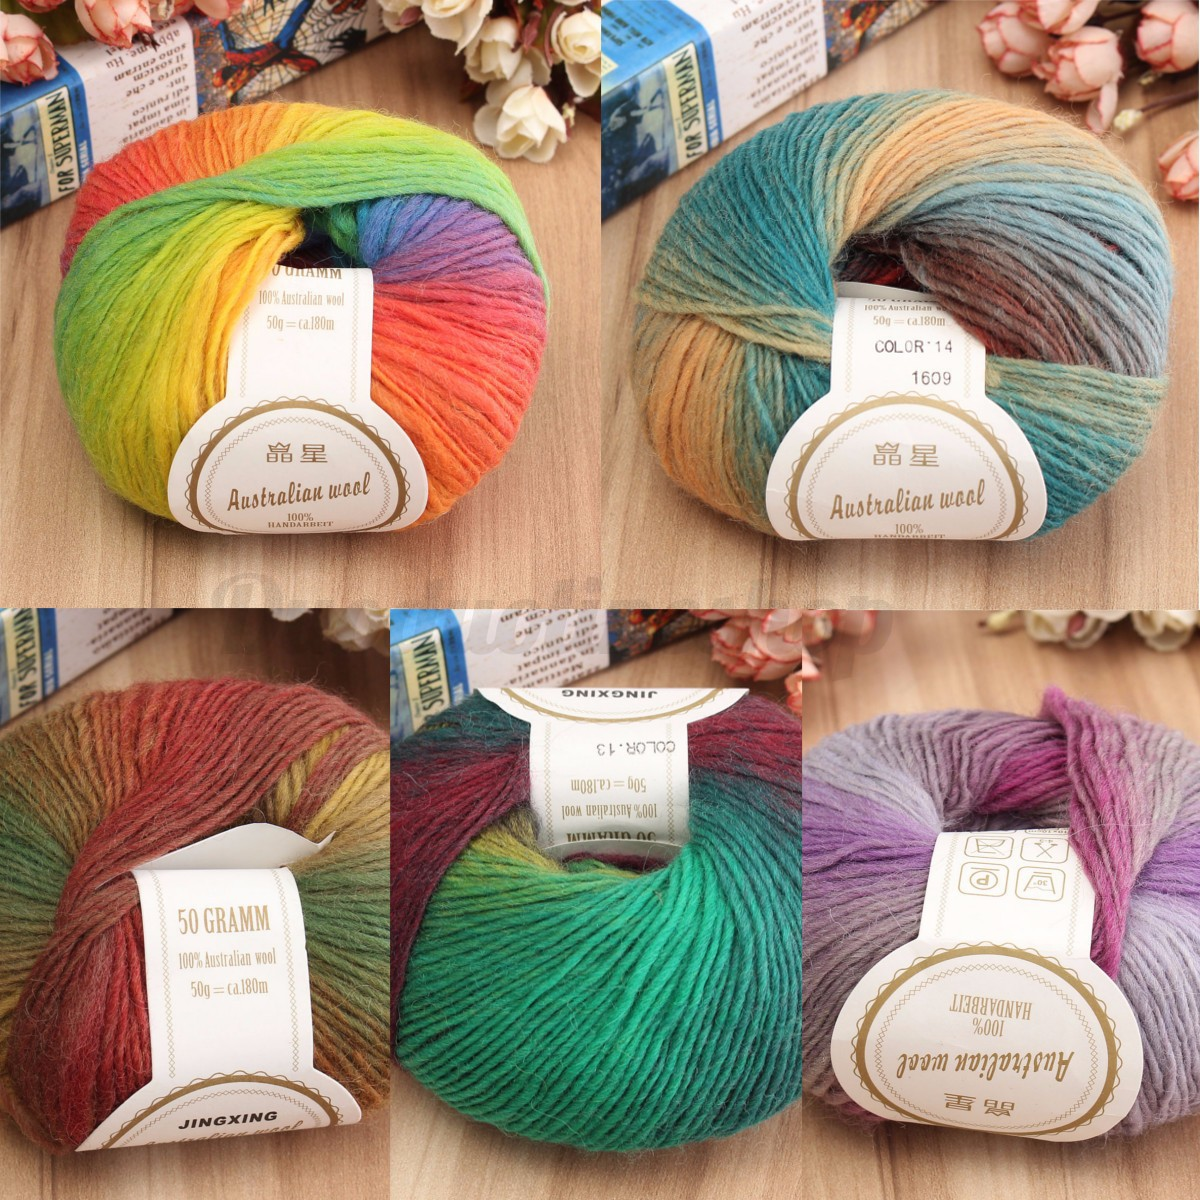 NEW! LOT of 1 Skeins x 50g Chunky Hand-woven Colors Knitting Scores wool yarn A